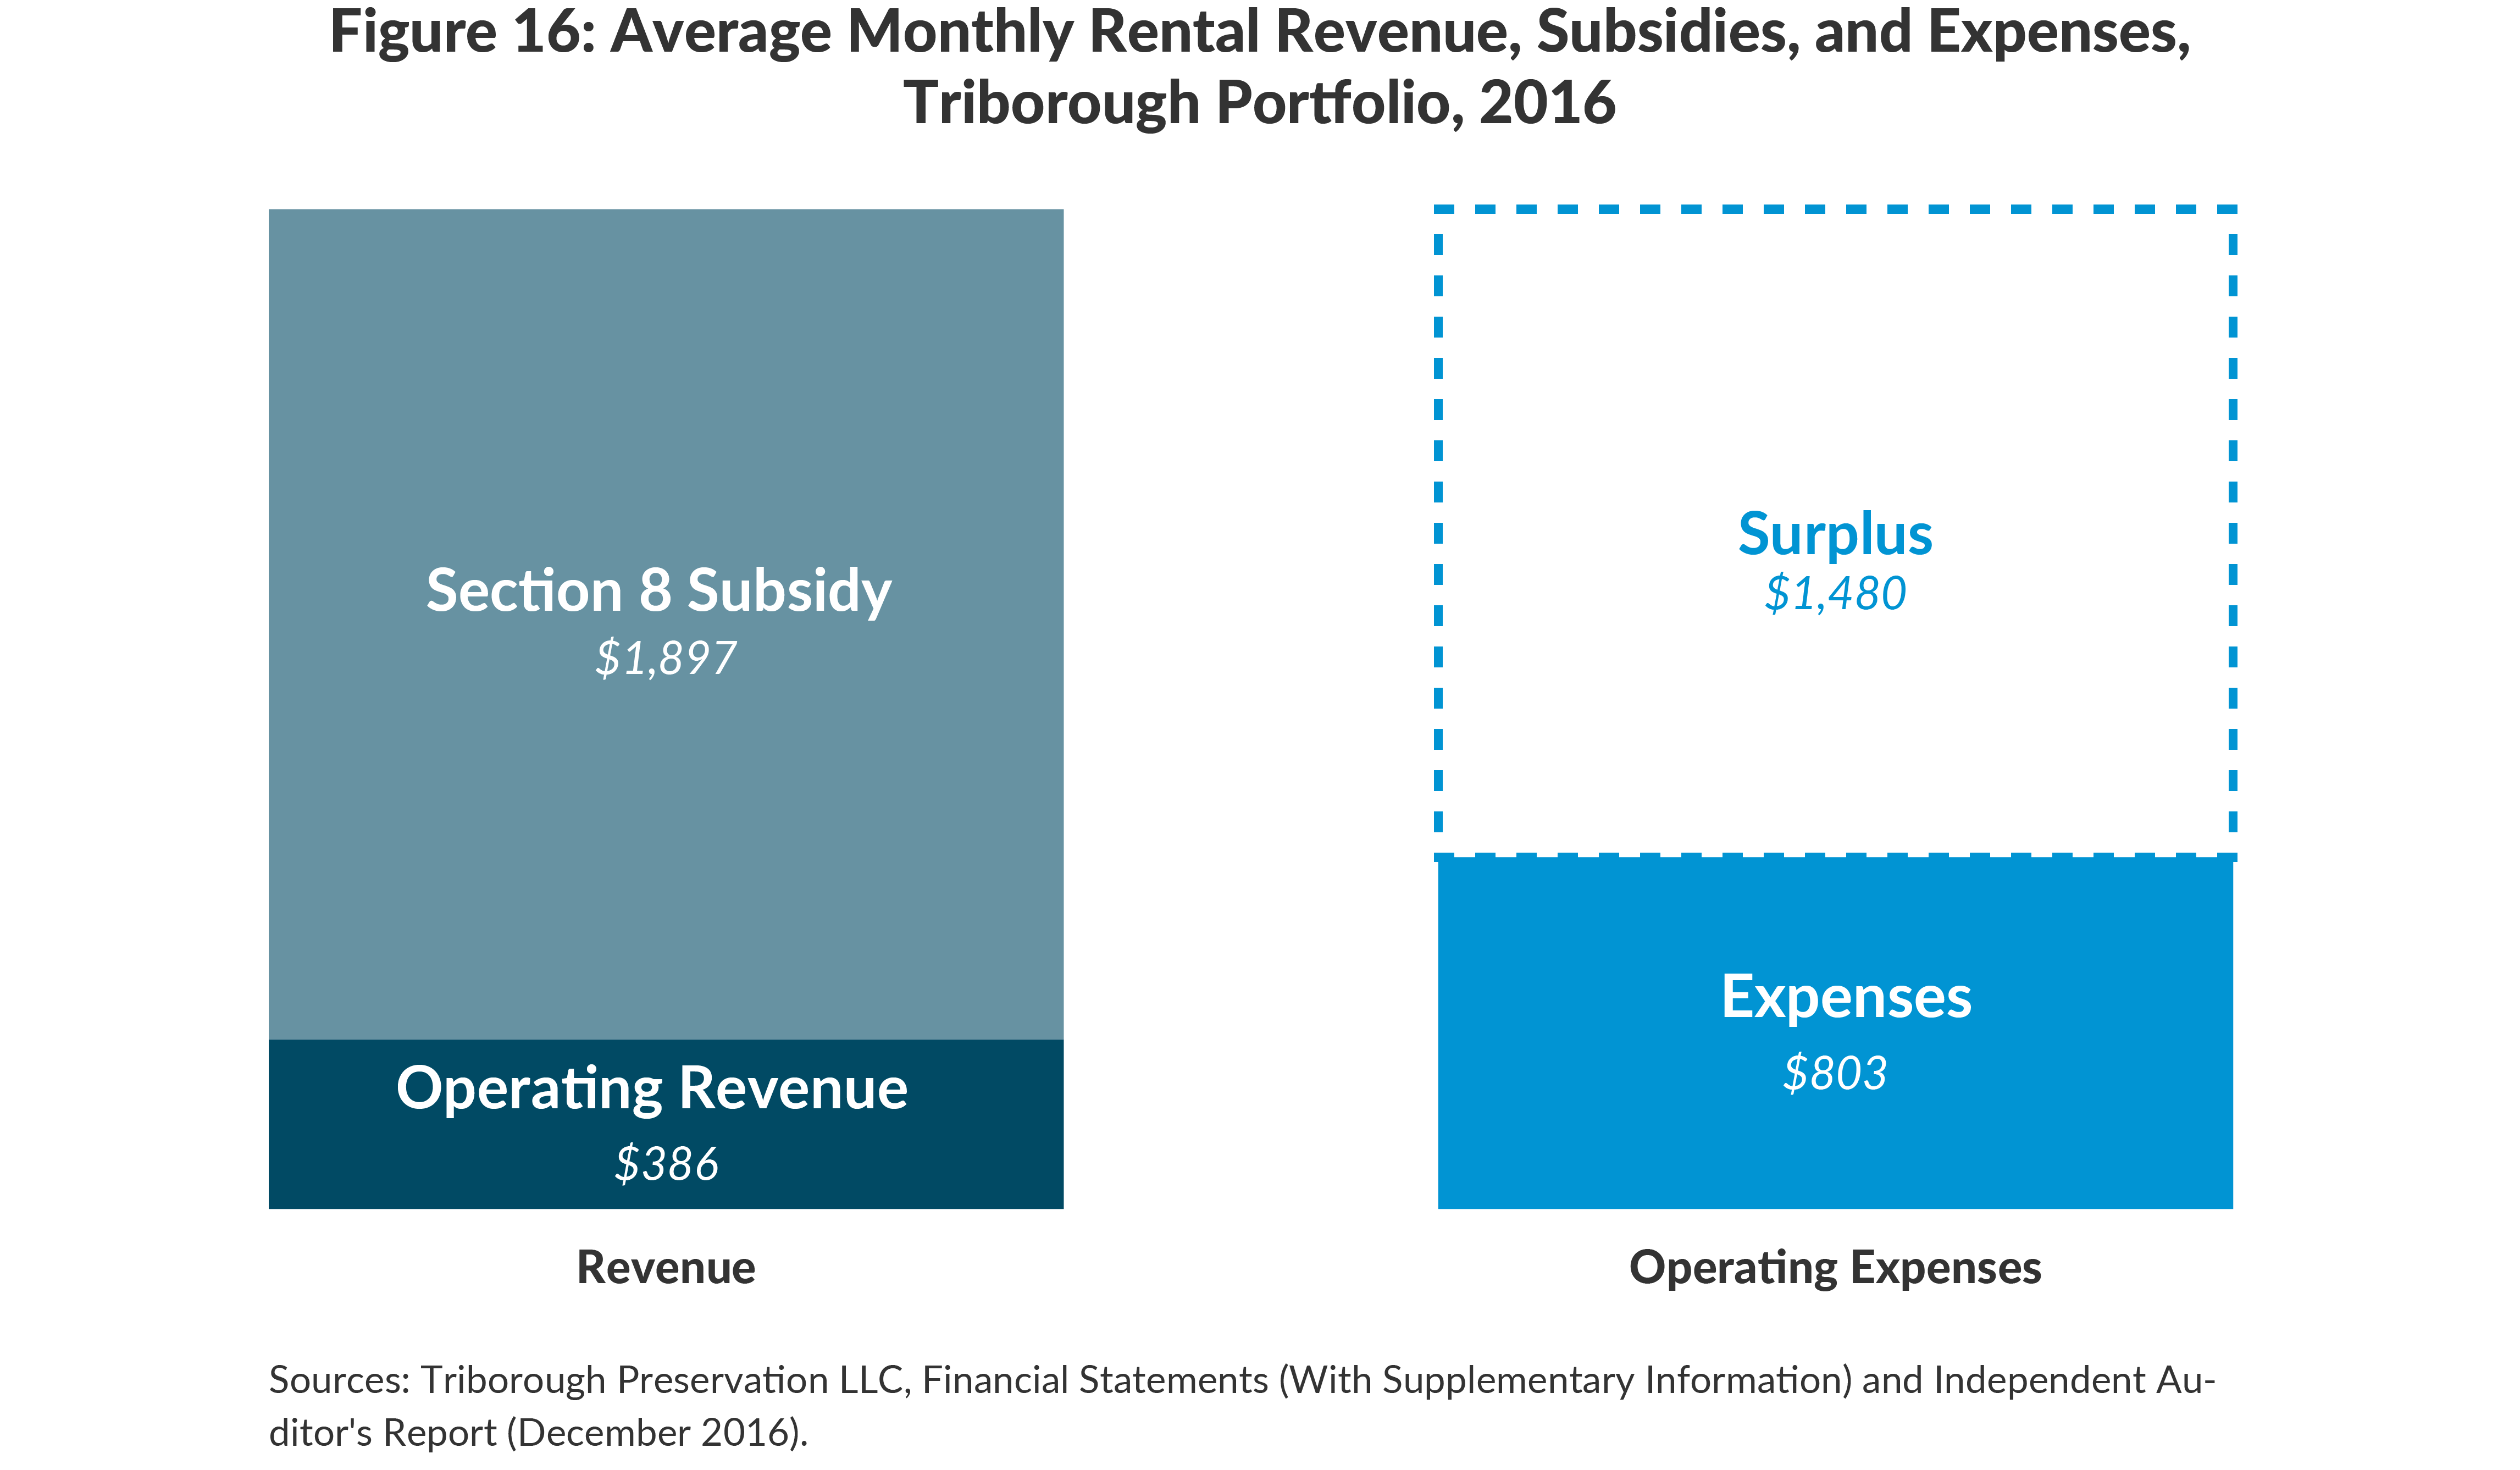 Figure 16: Average Monthly Rental Revenue, Subsidies, and Expenses,Triborough Portfolio, 2016